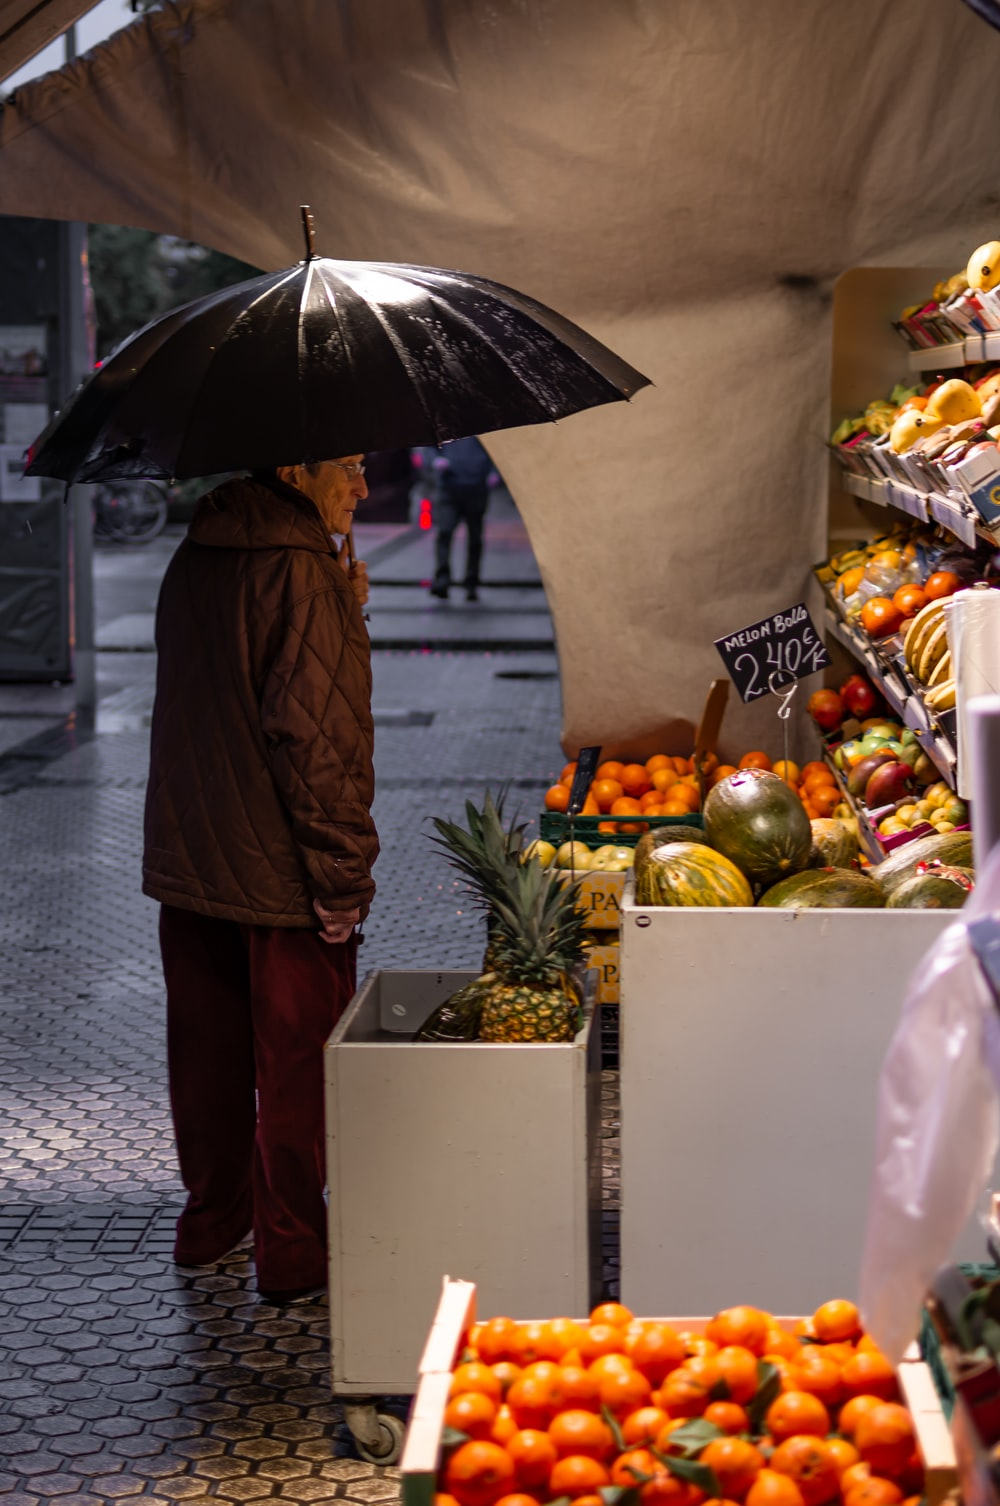 man standing in front fruit stand while holding black umbrella